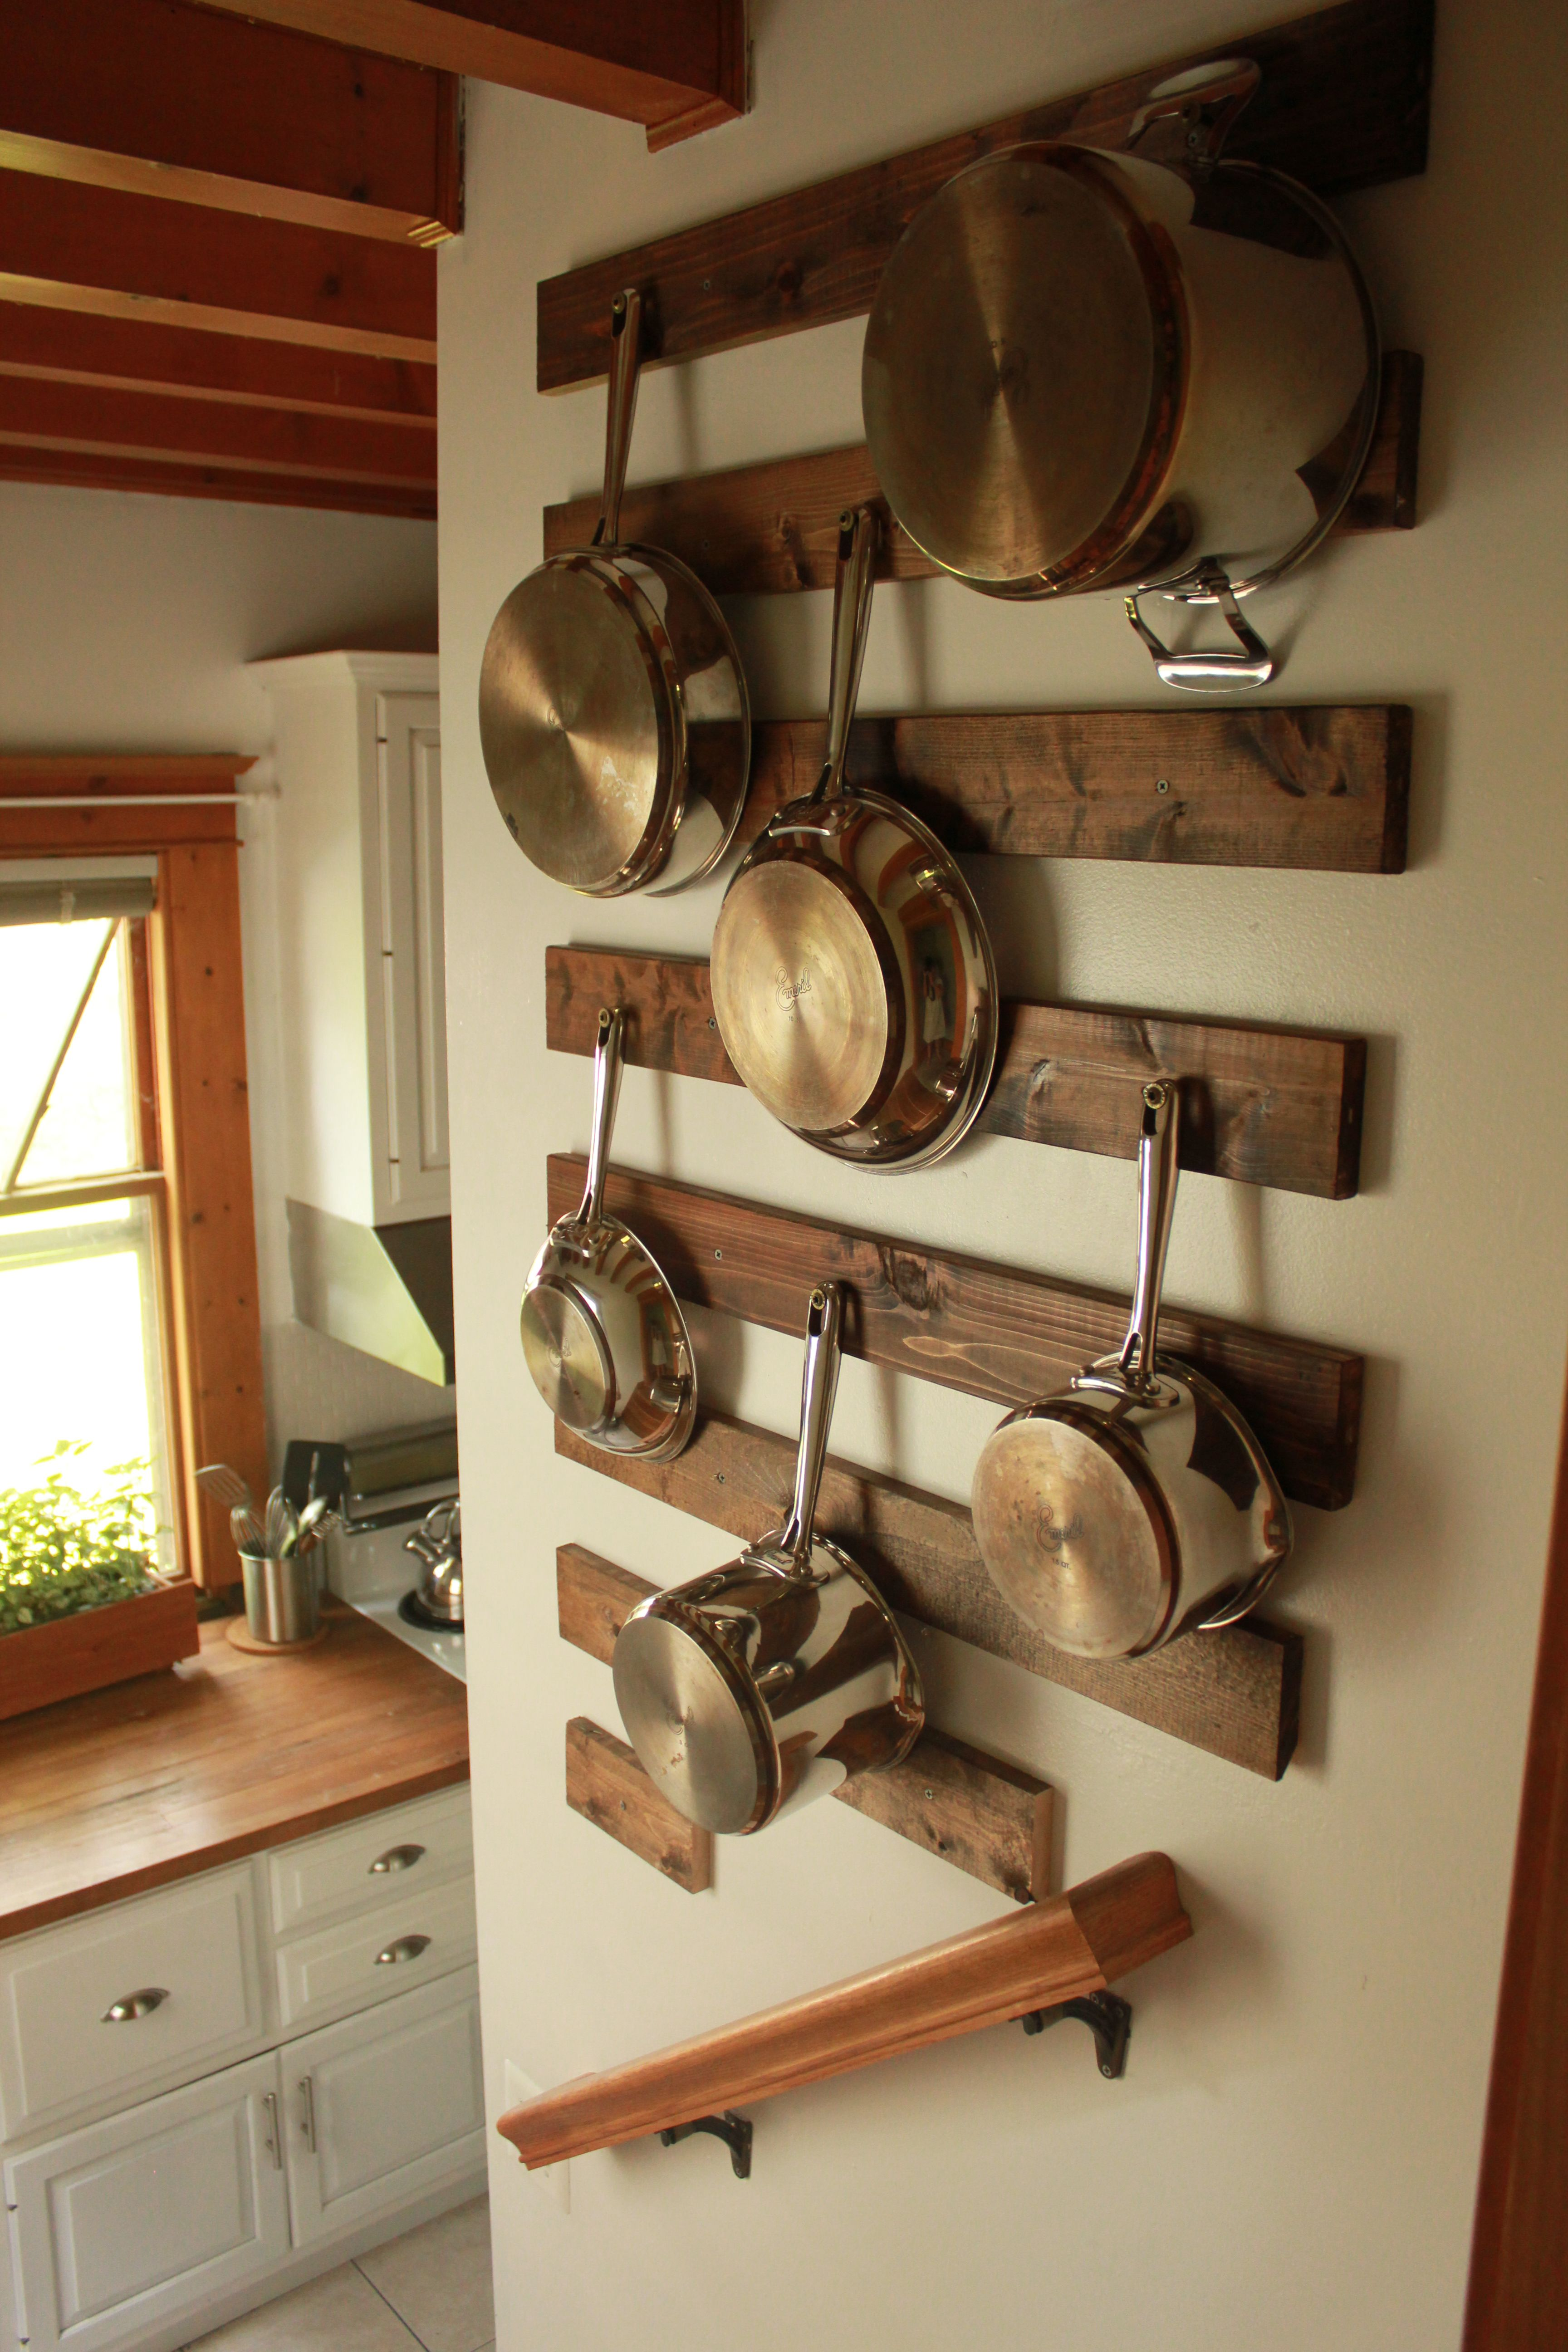 mounted racks amazon com dining wooden hanging inch single bar rack dp pot kitchen ceiling cooks standard